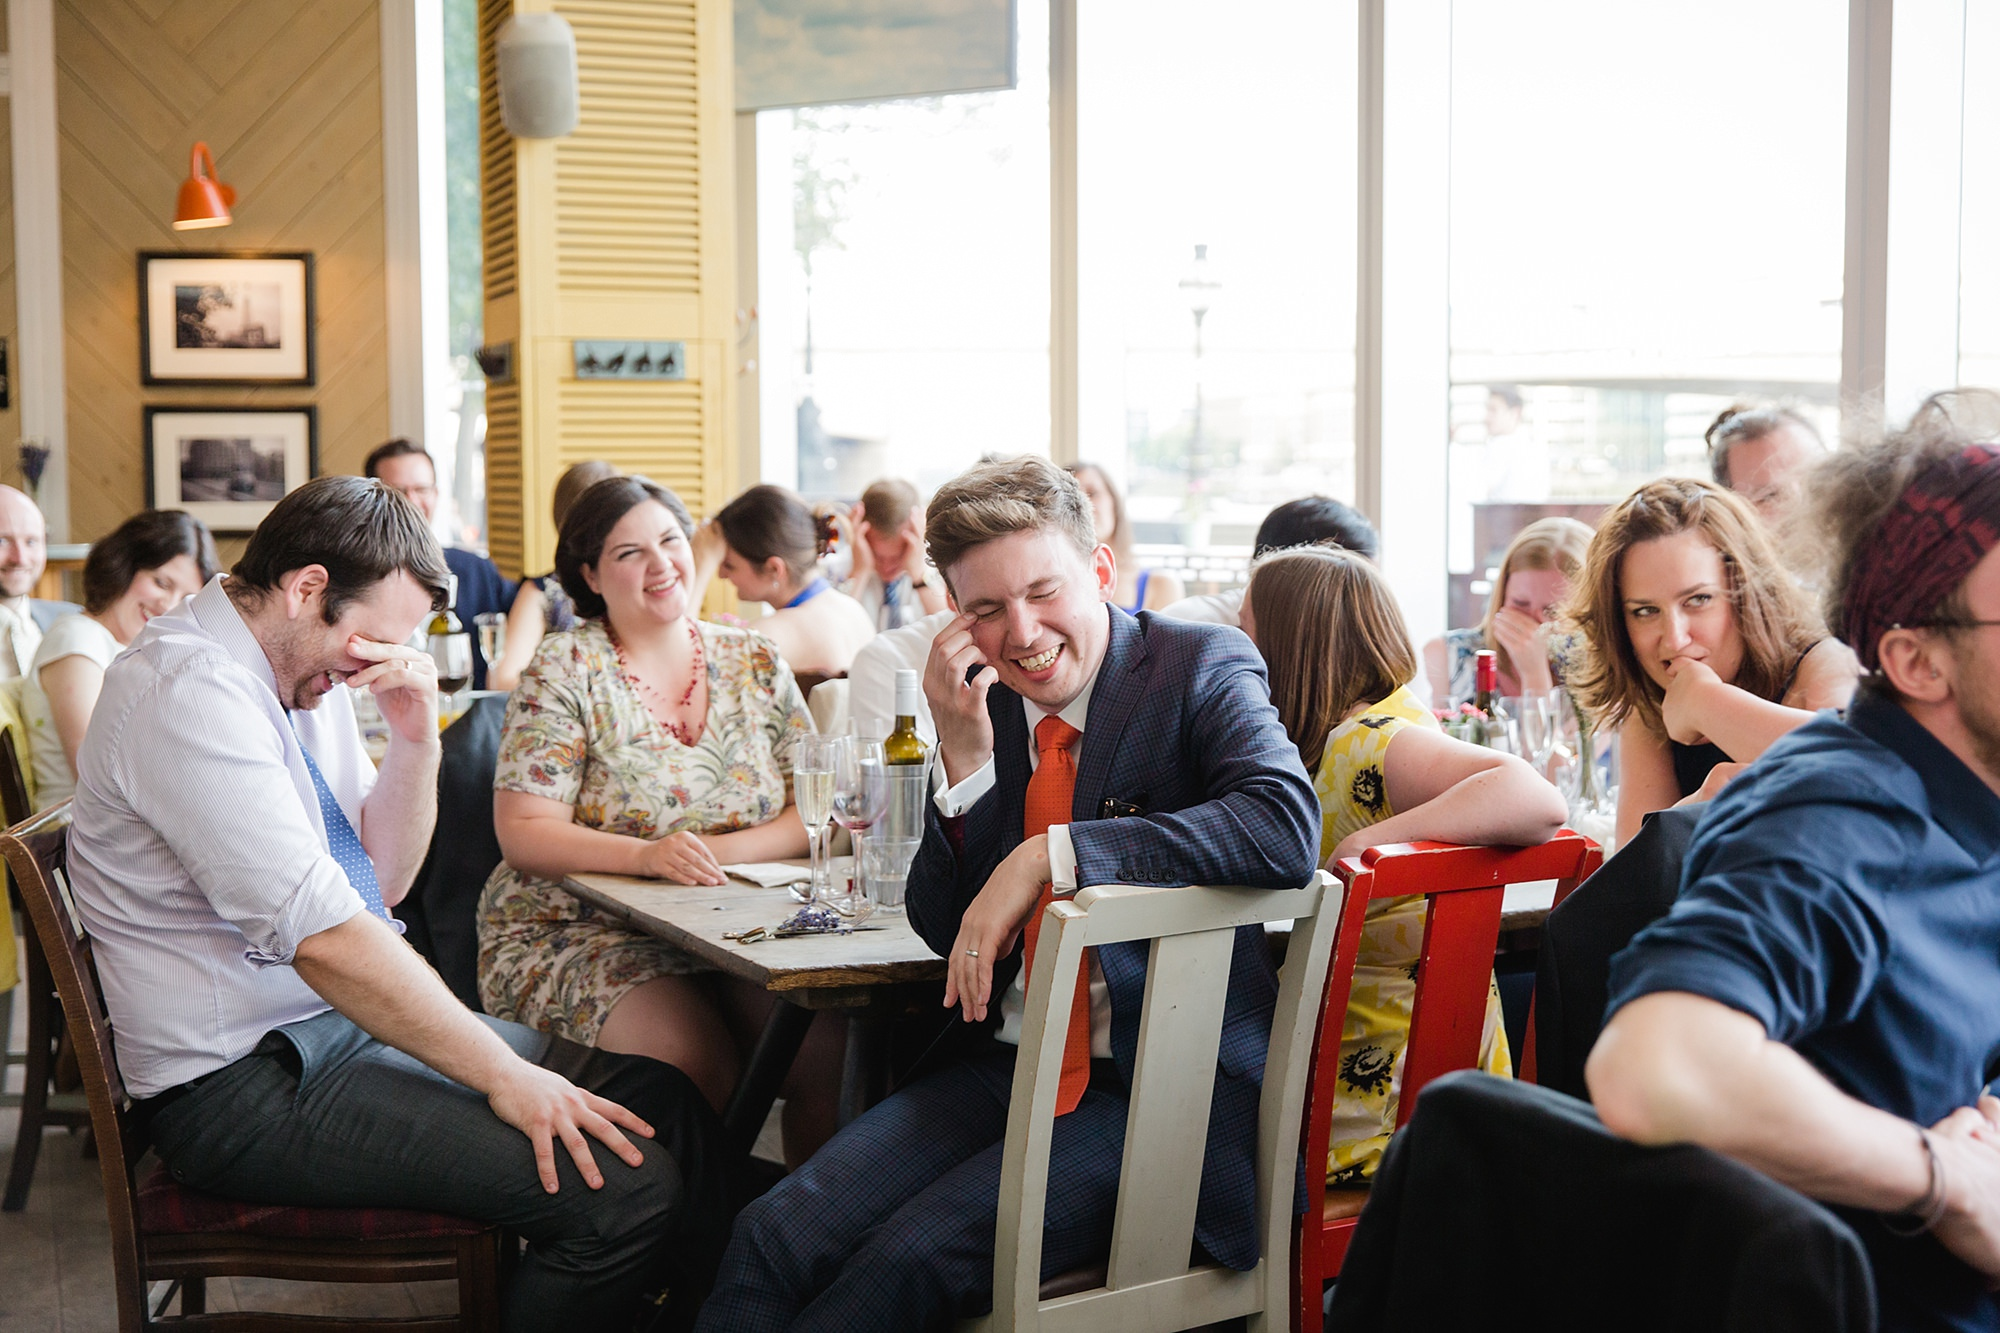 oyster shed wedding guests laughing at groom's speech